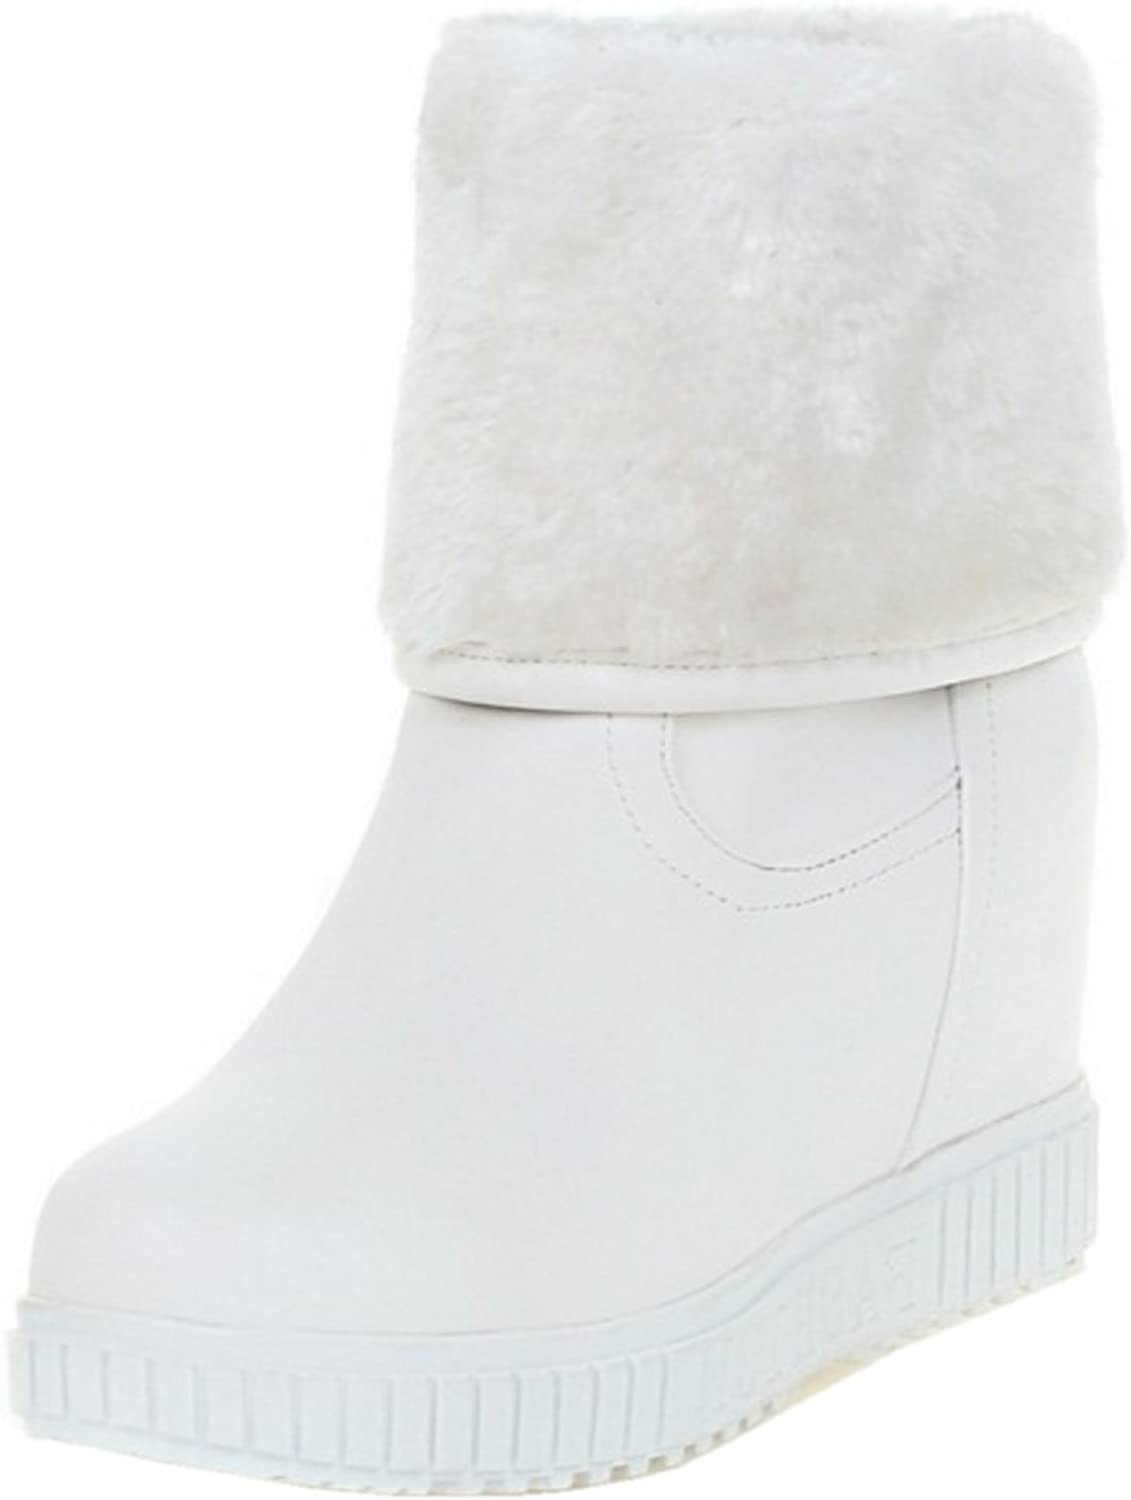 RizaBina Women Hidden Heel Boots Pull On